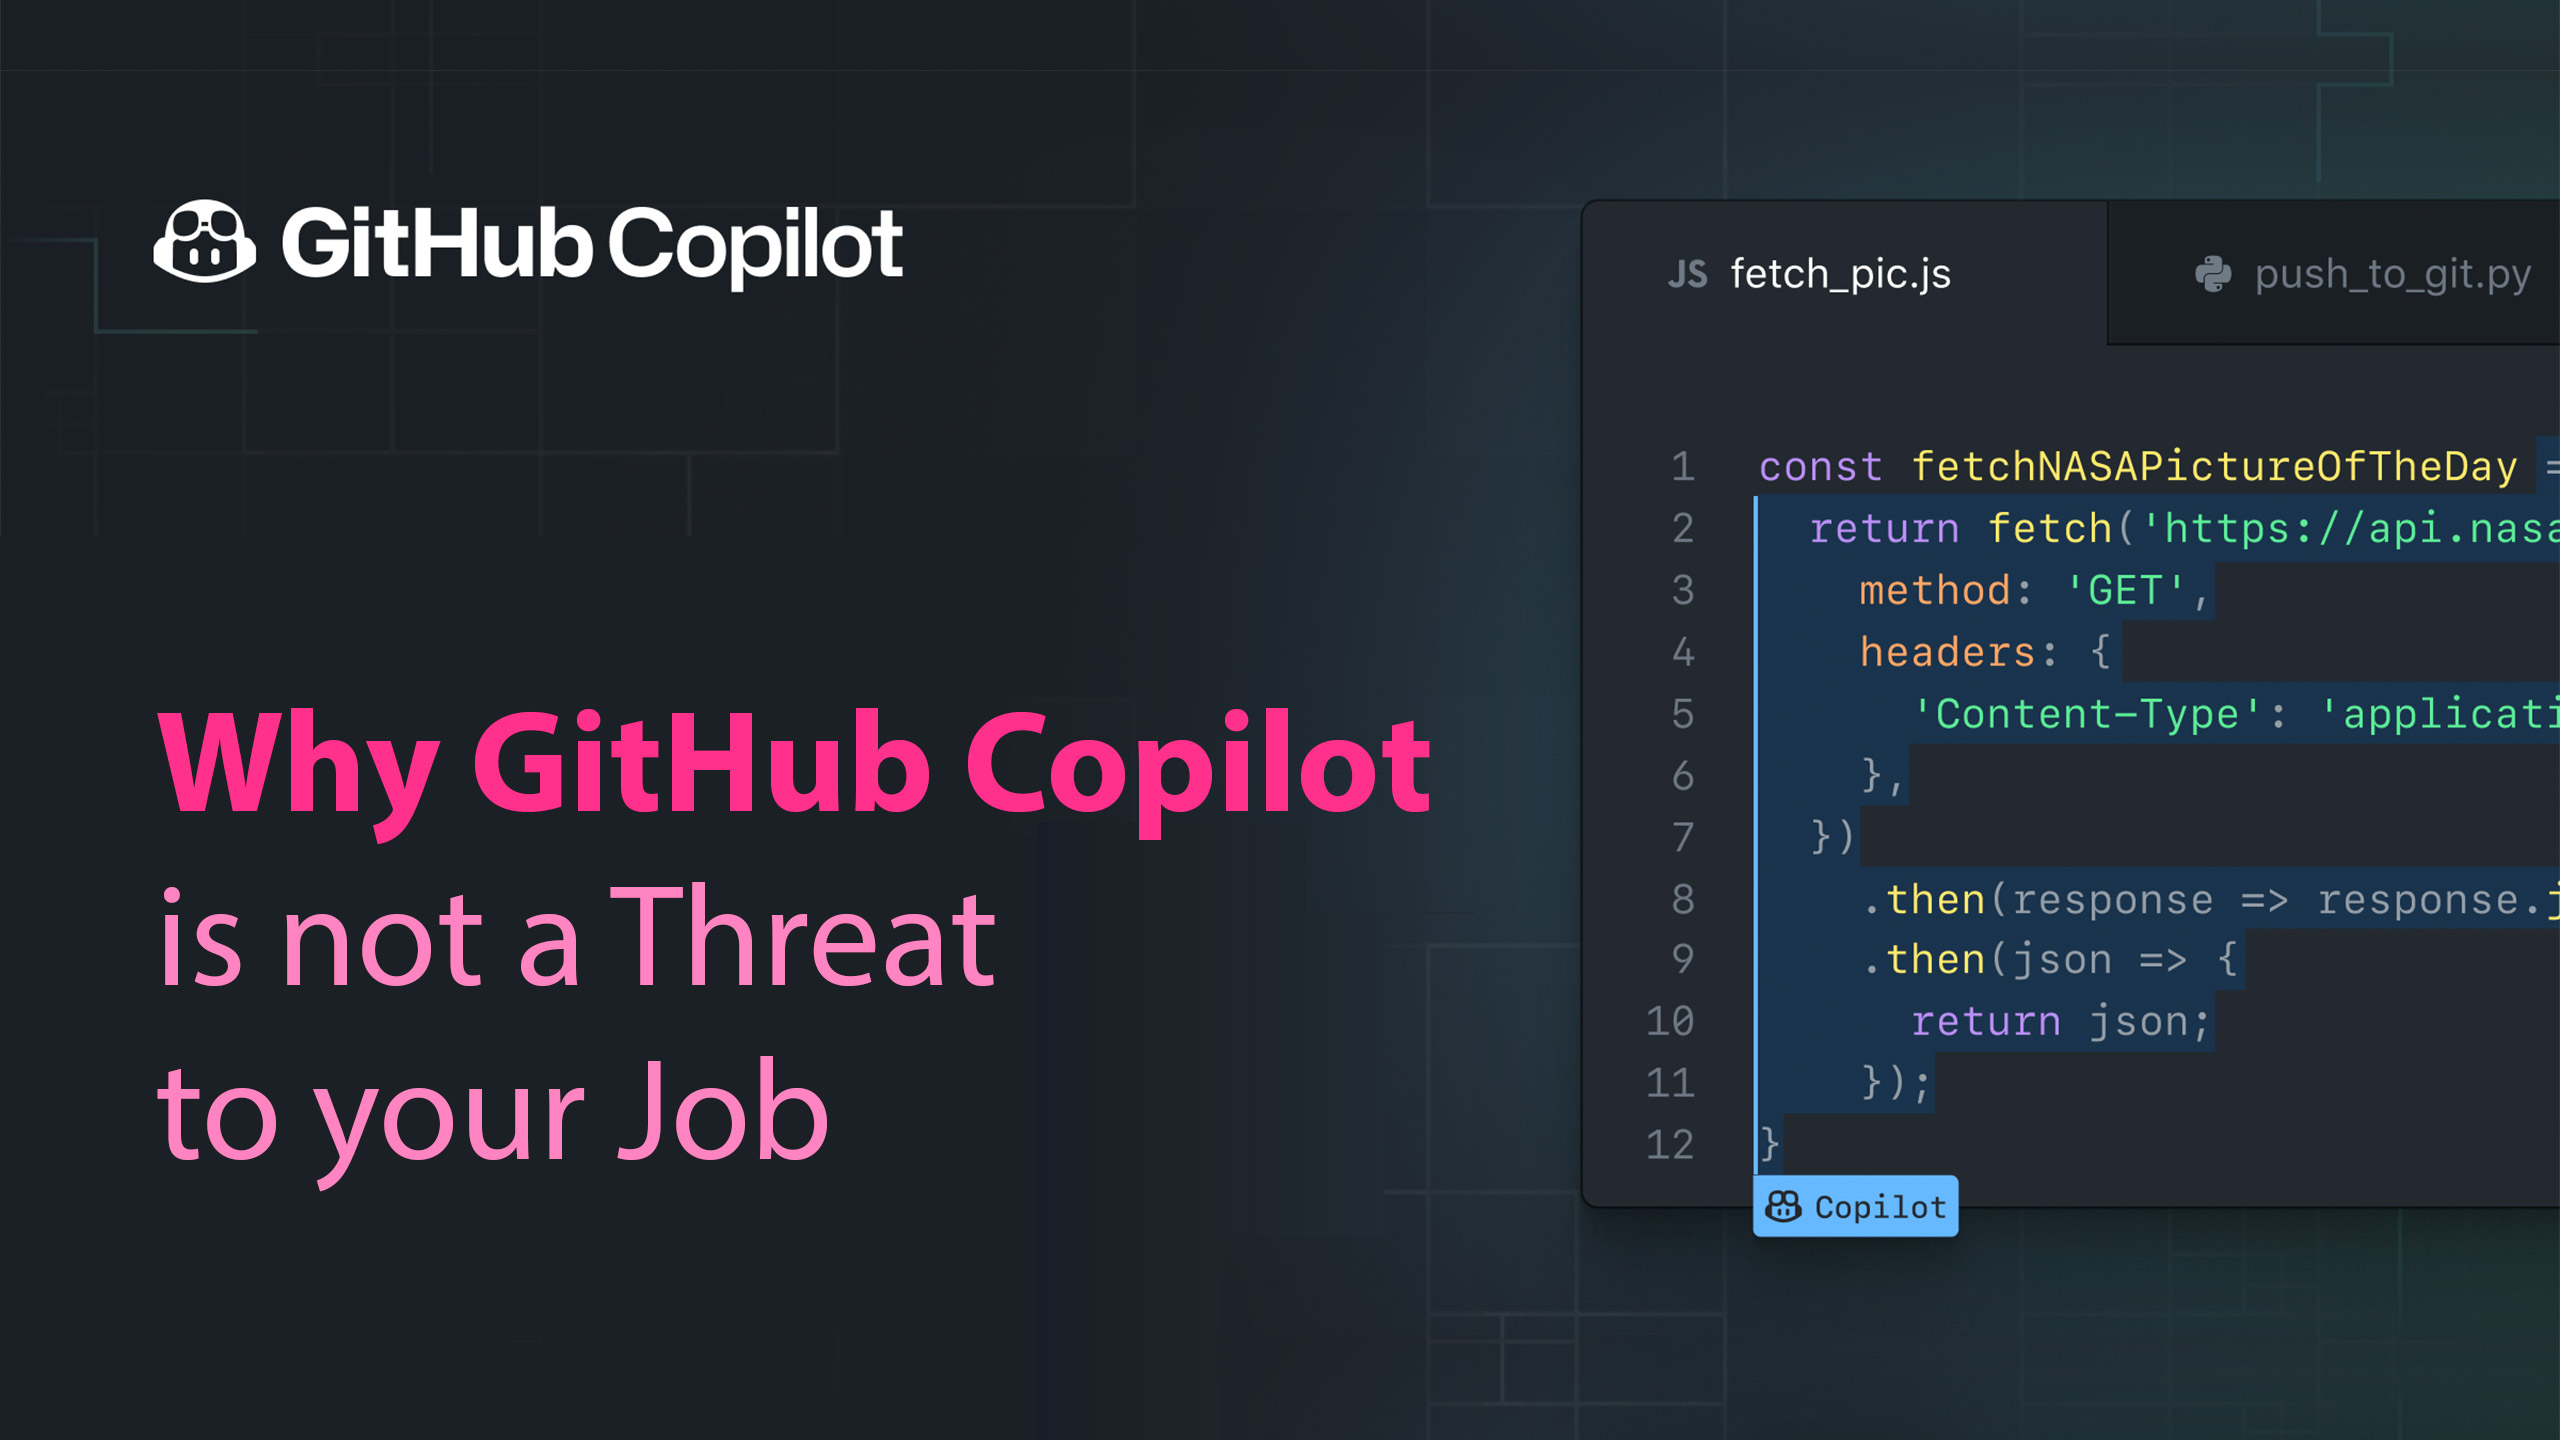 Why GitHub Copilot is not a Threat to your Job